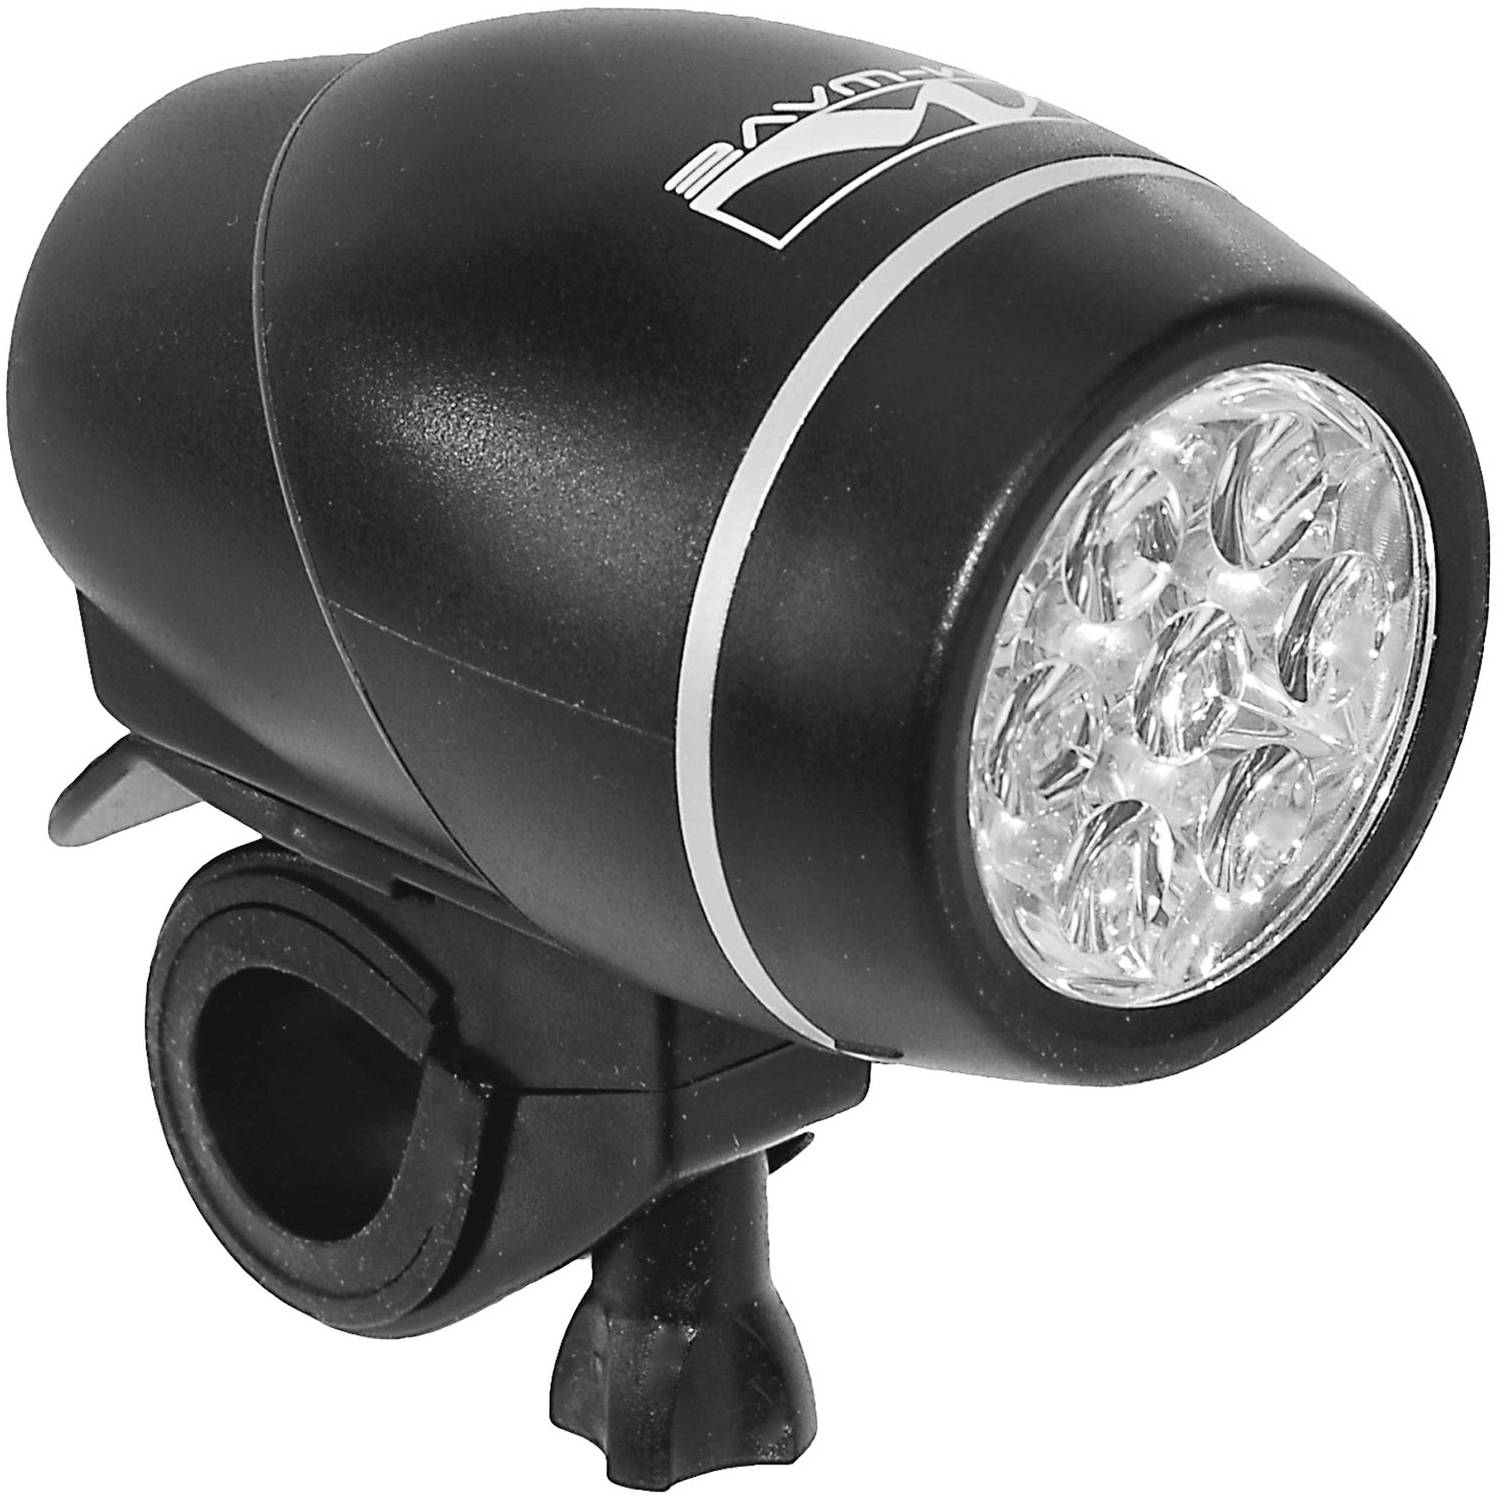 Ventura Apollo 7.4 Bicycle Headlight